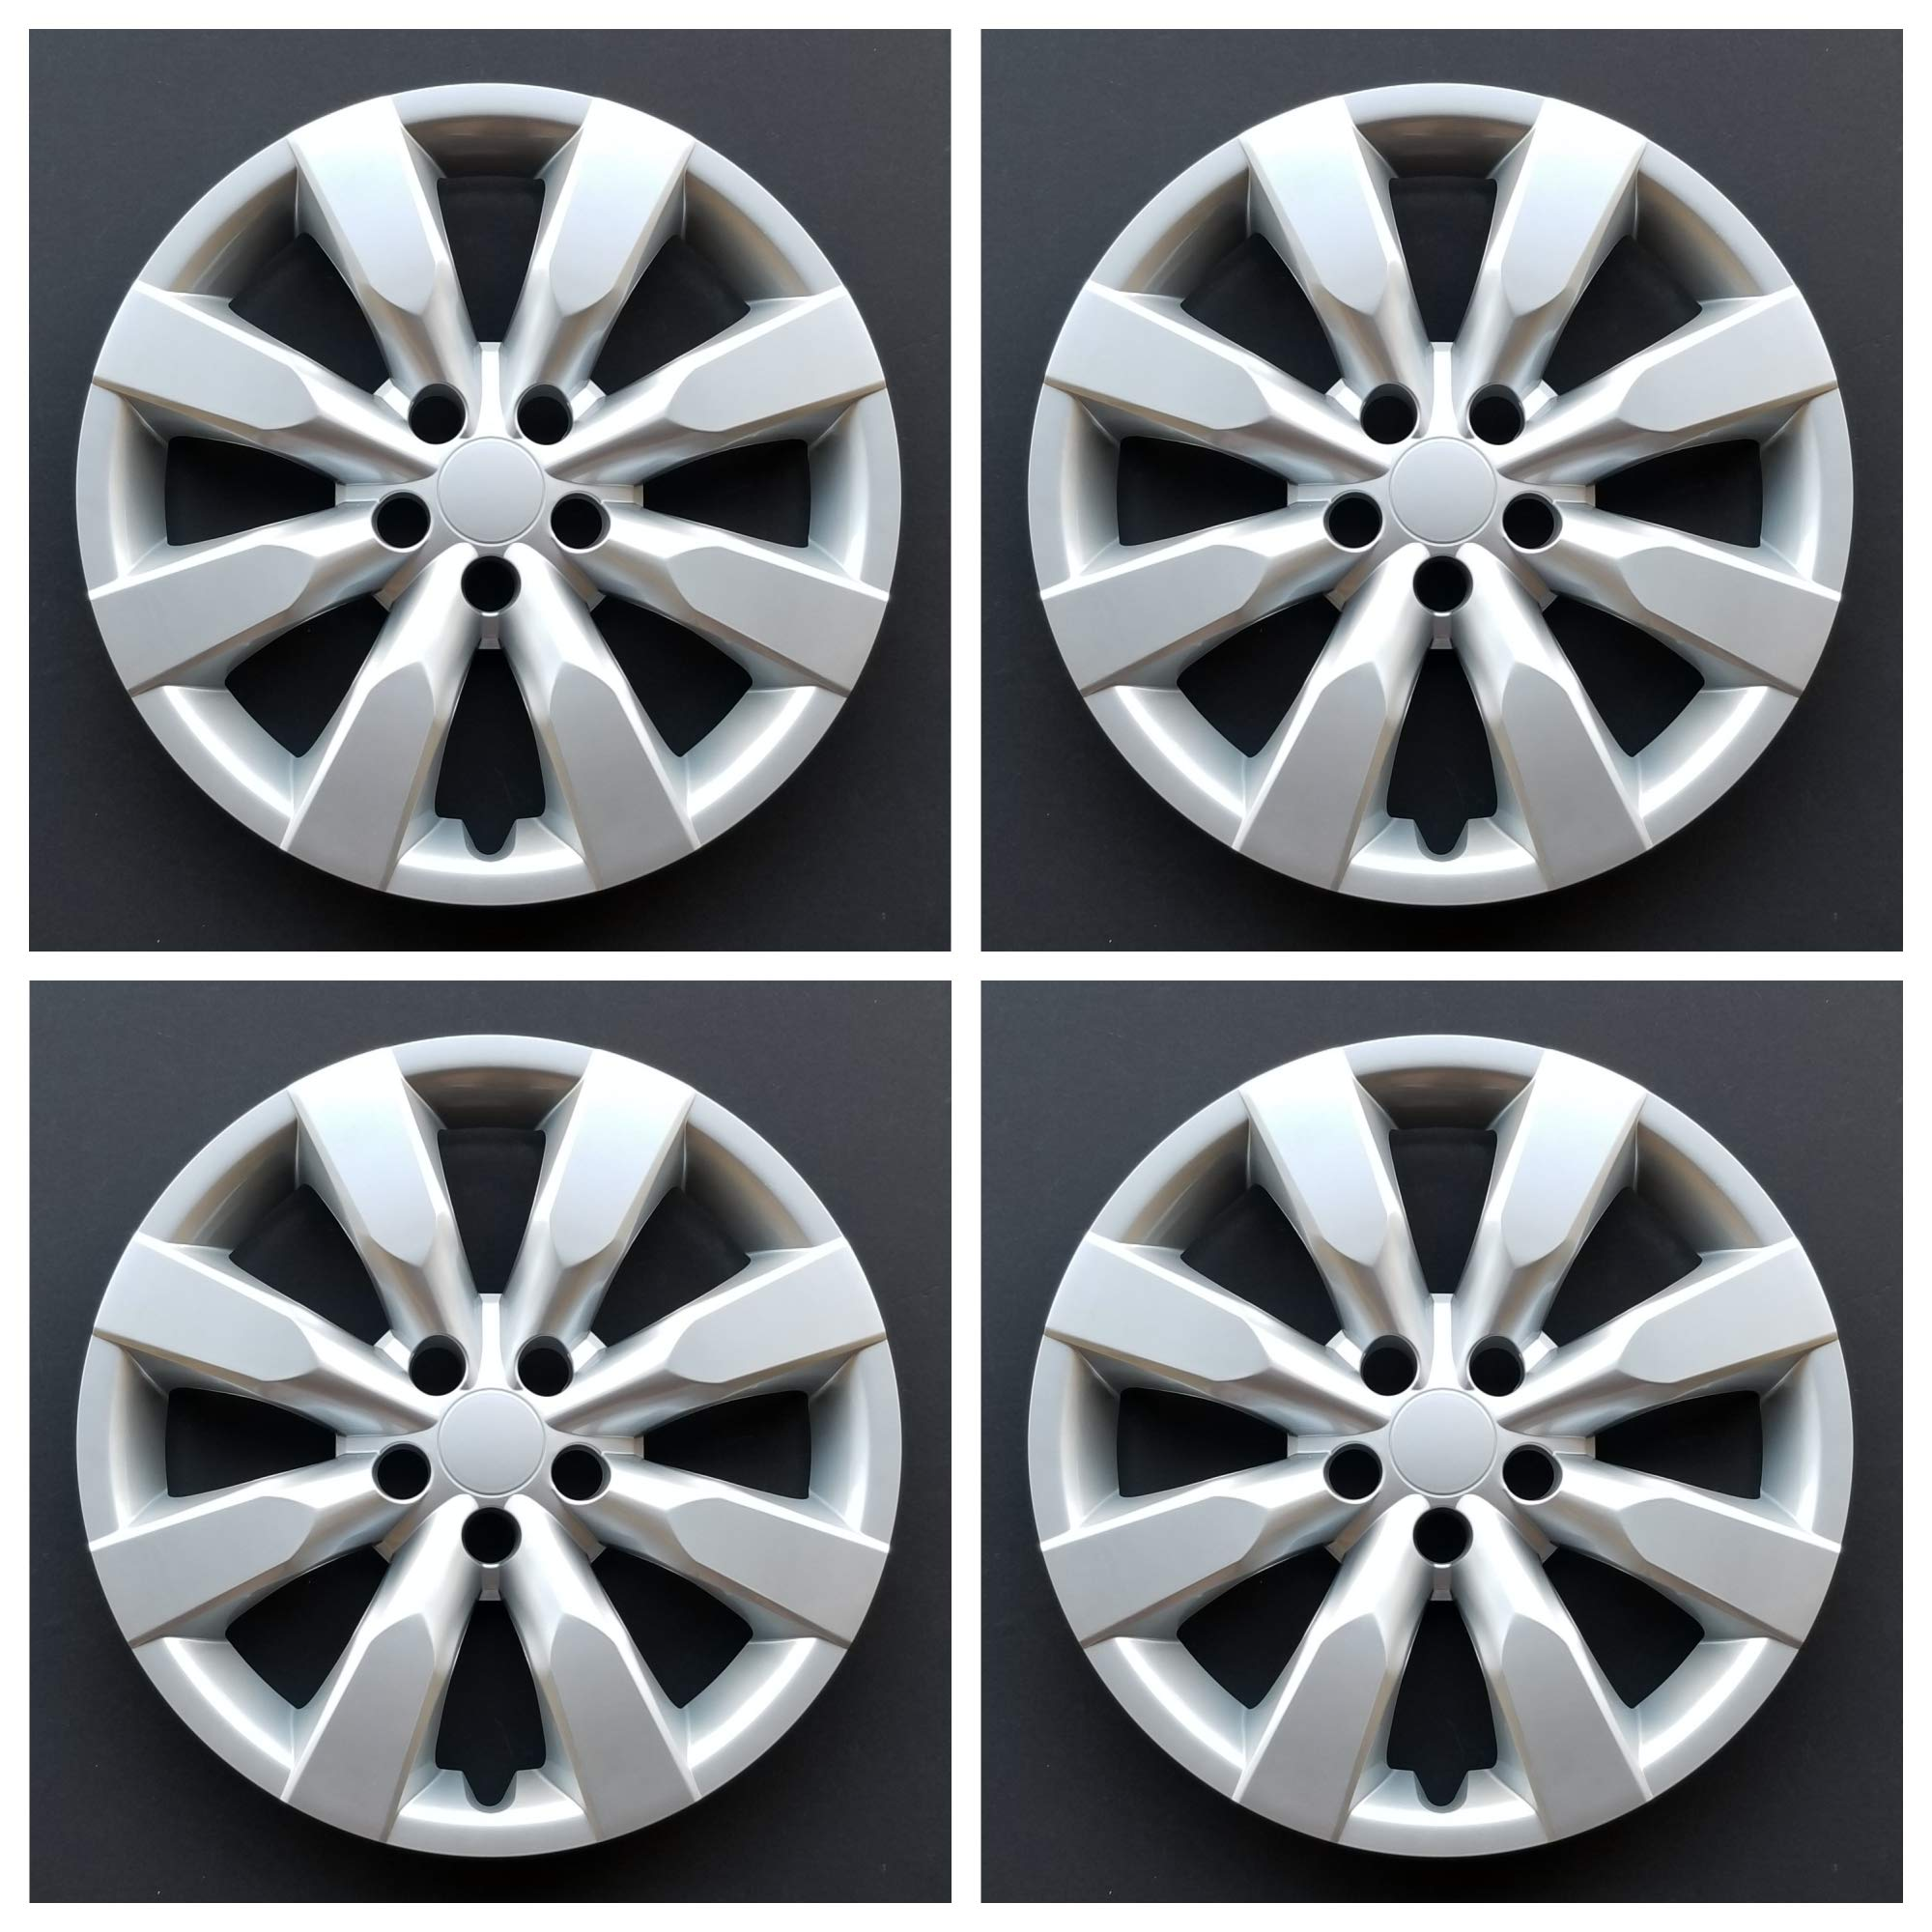 "New Wheel Covers Hubcaps Fits 2020 Toyota Corolla 16/"" Silver 8 Spoke Set Of 4"